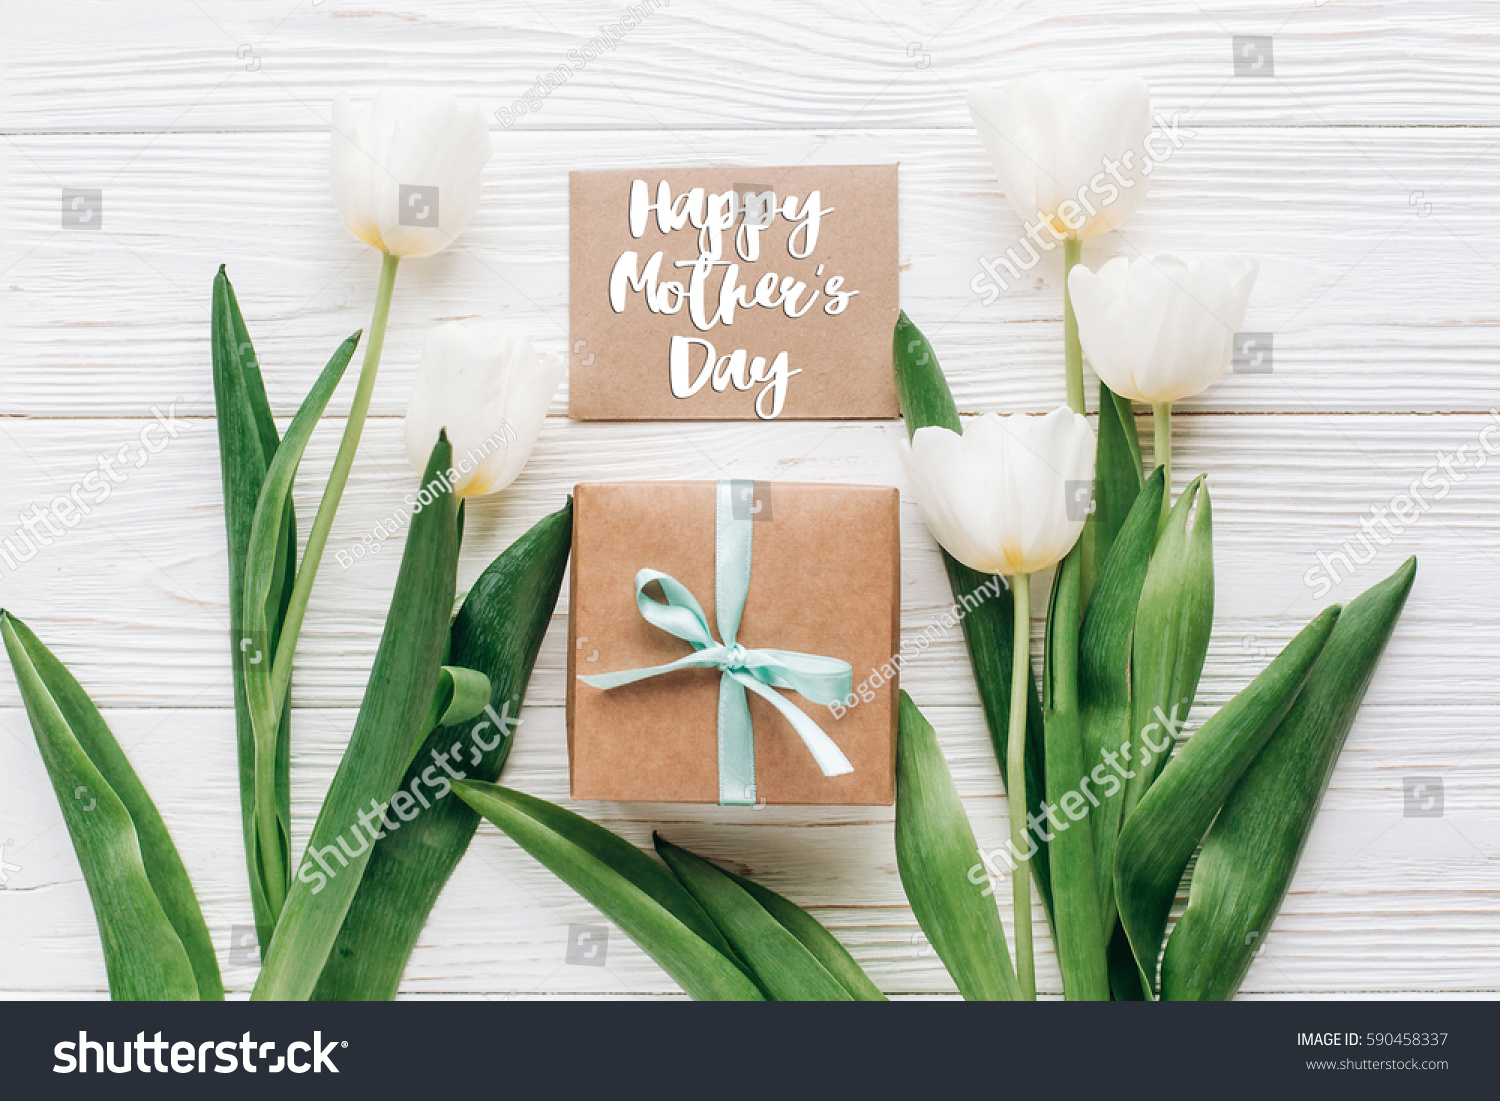 Happy mothers day text sign on stock photo 590458337 shutterstock happy mothers day text sign on greeting card with stylish present box and tulips on white kristyandbryce Choice Image